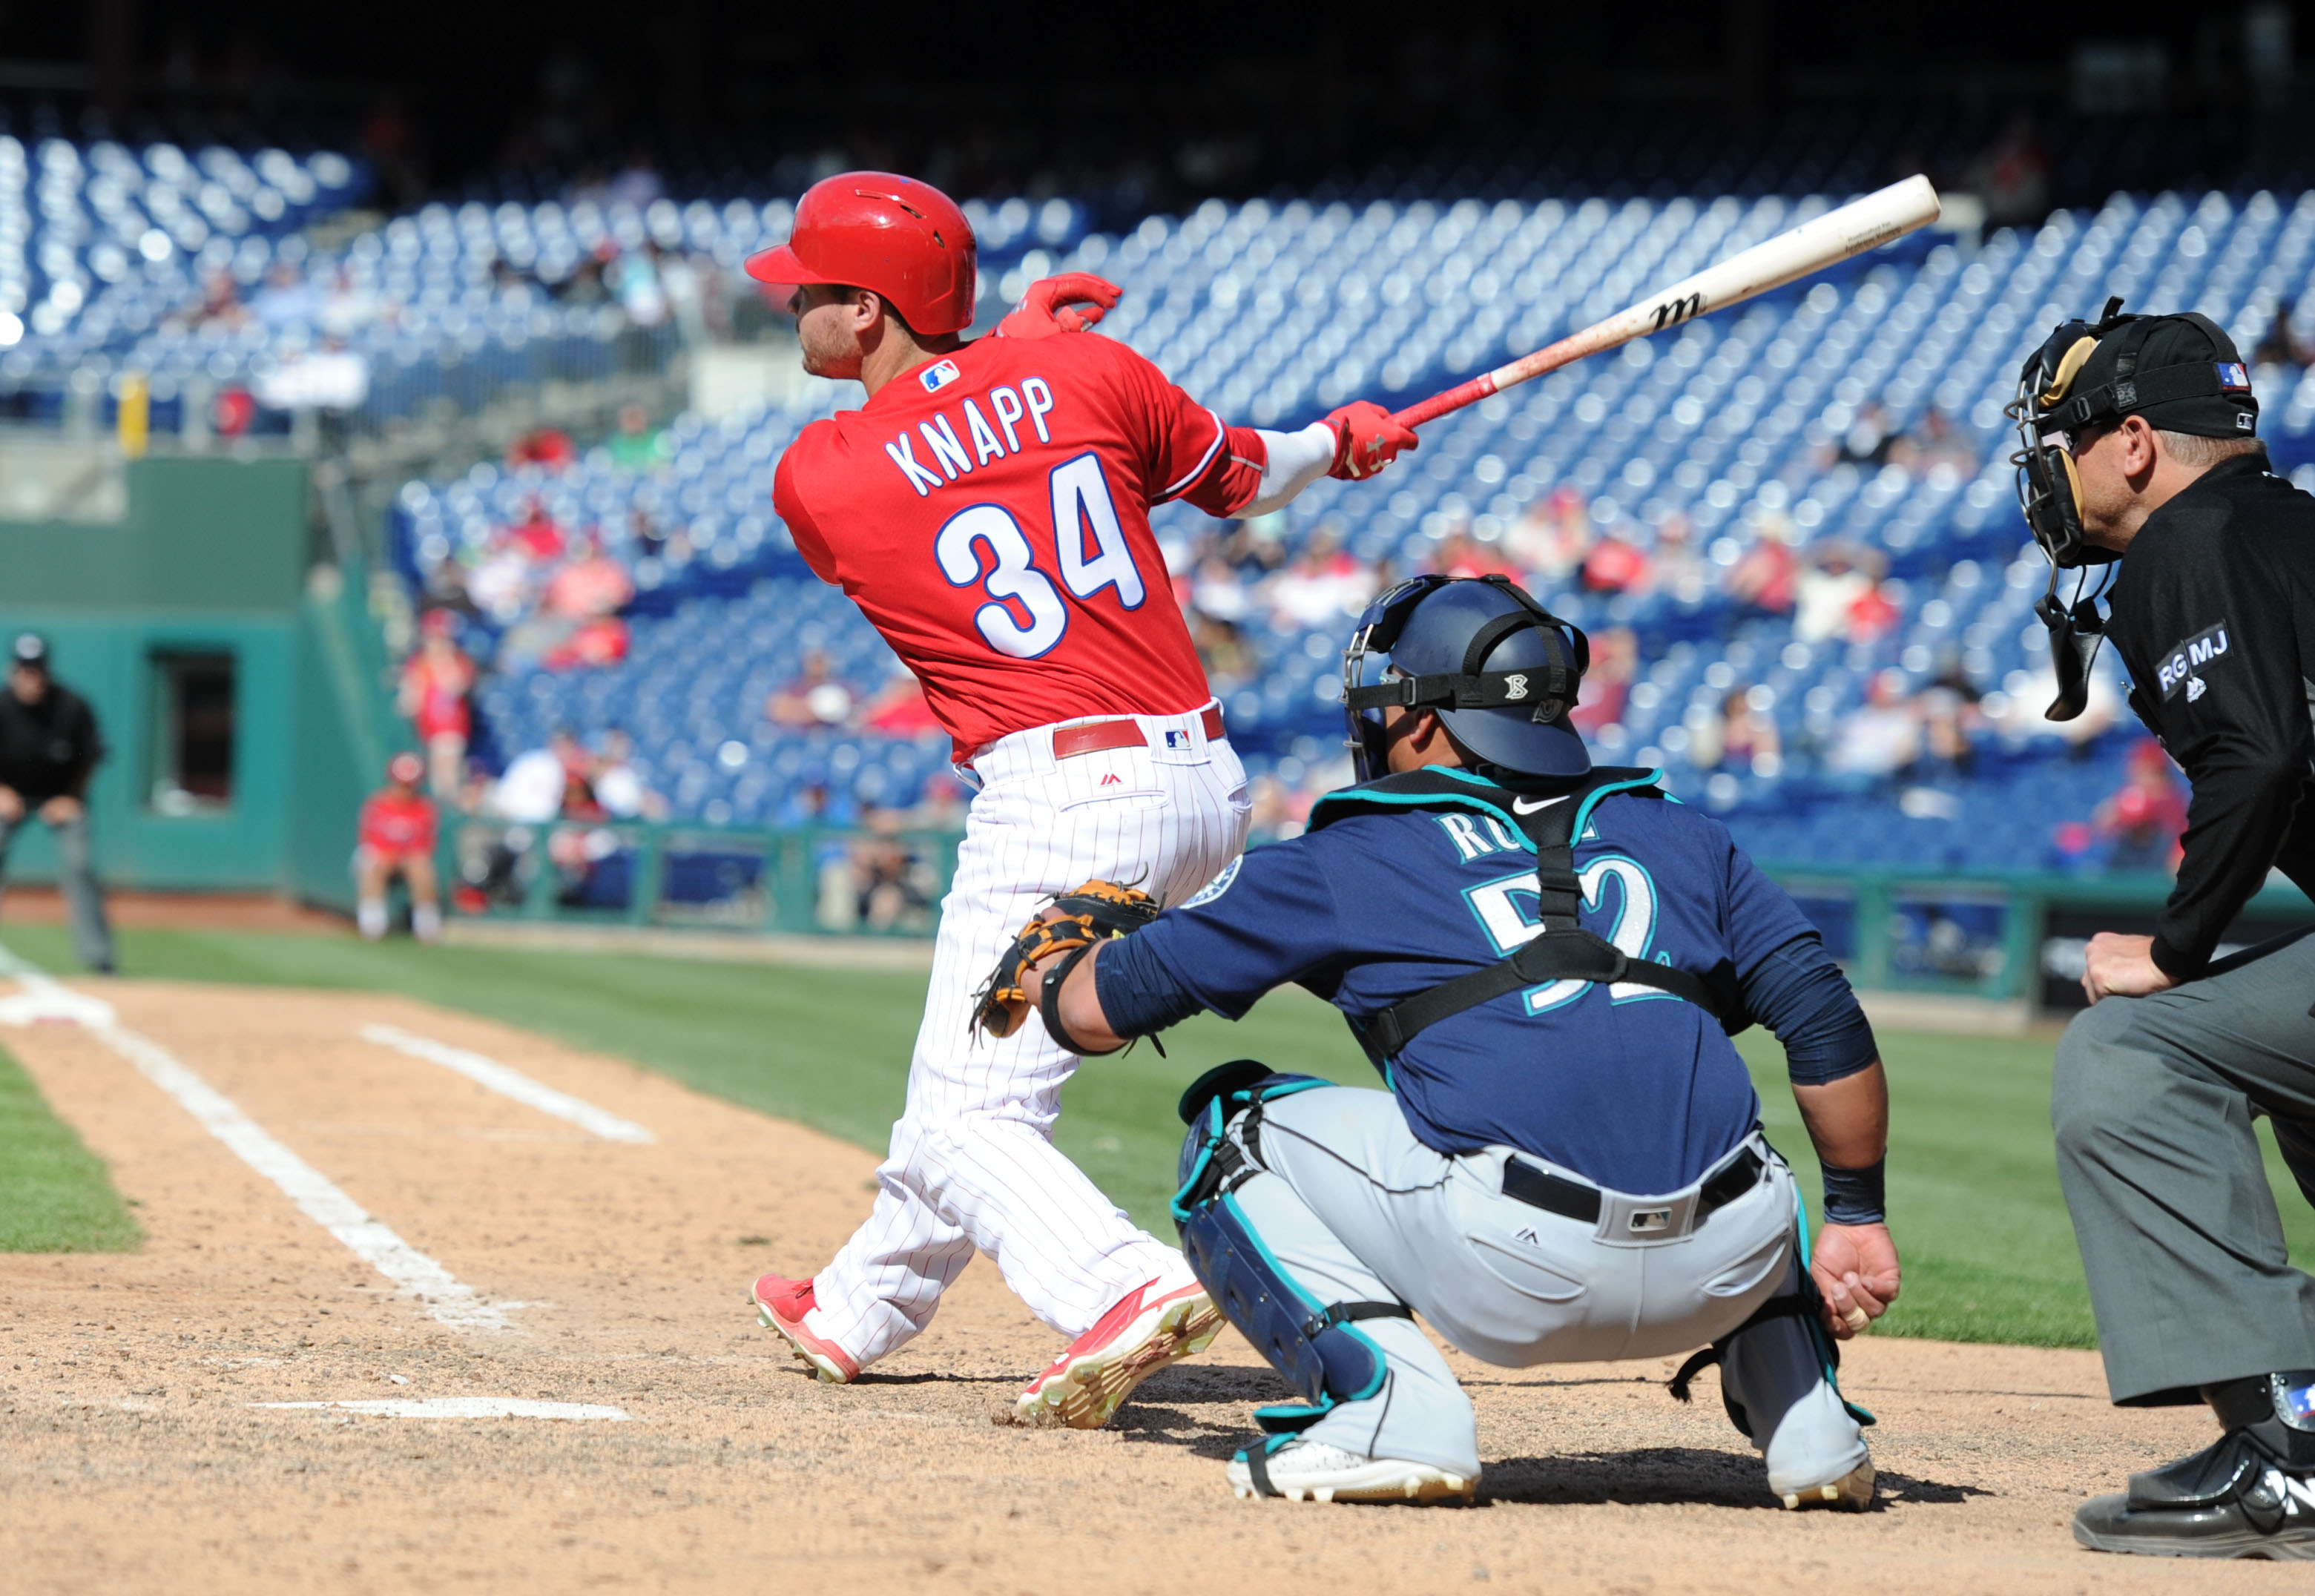 REPORT: Phillies game Thursday night cancelled - The Good ...